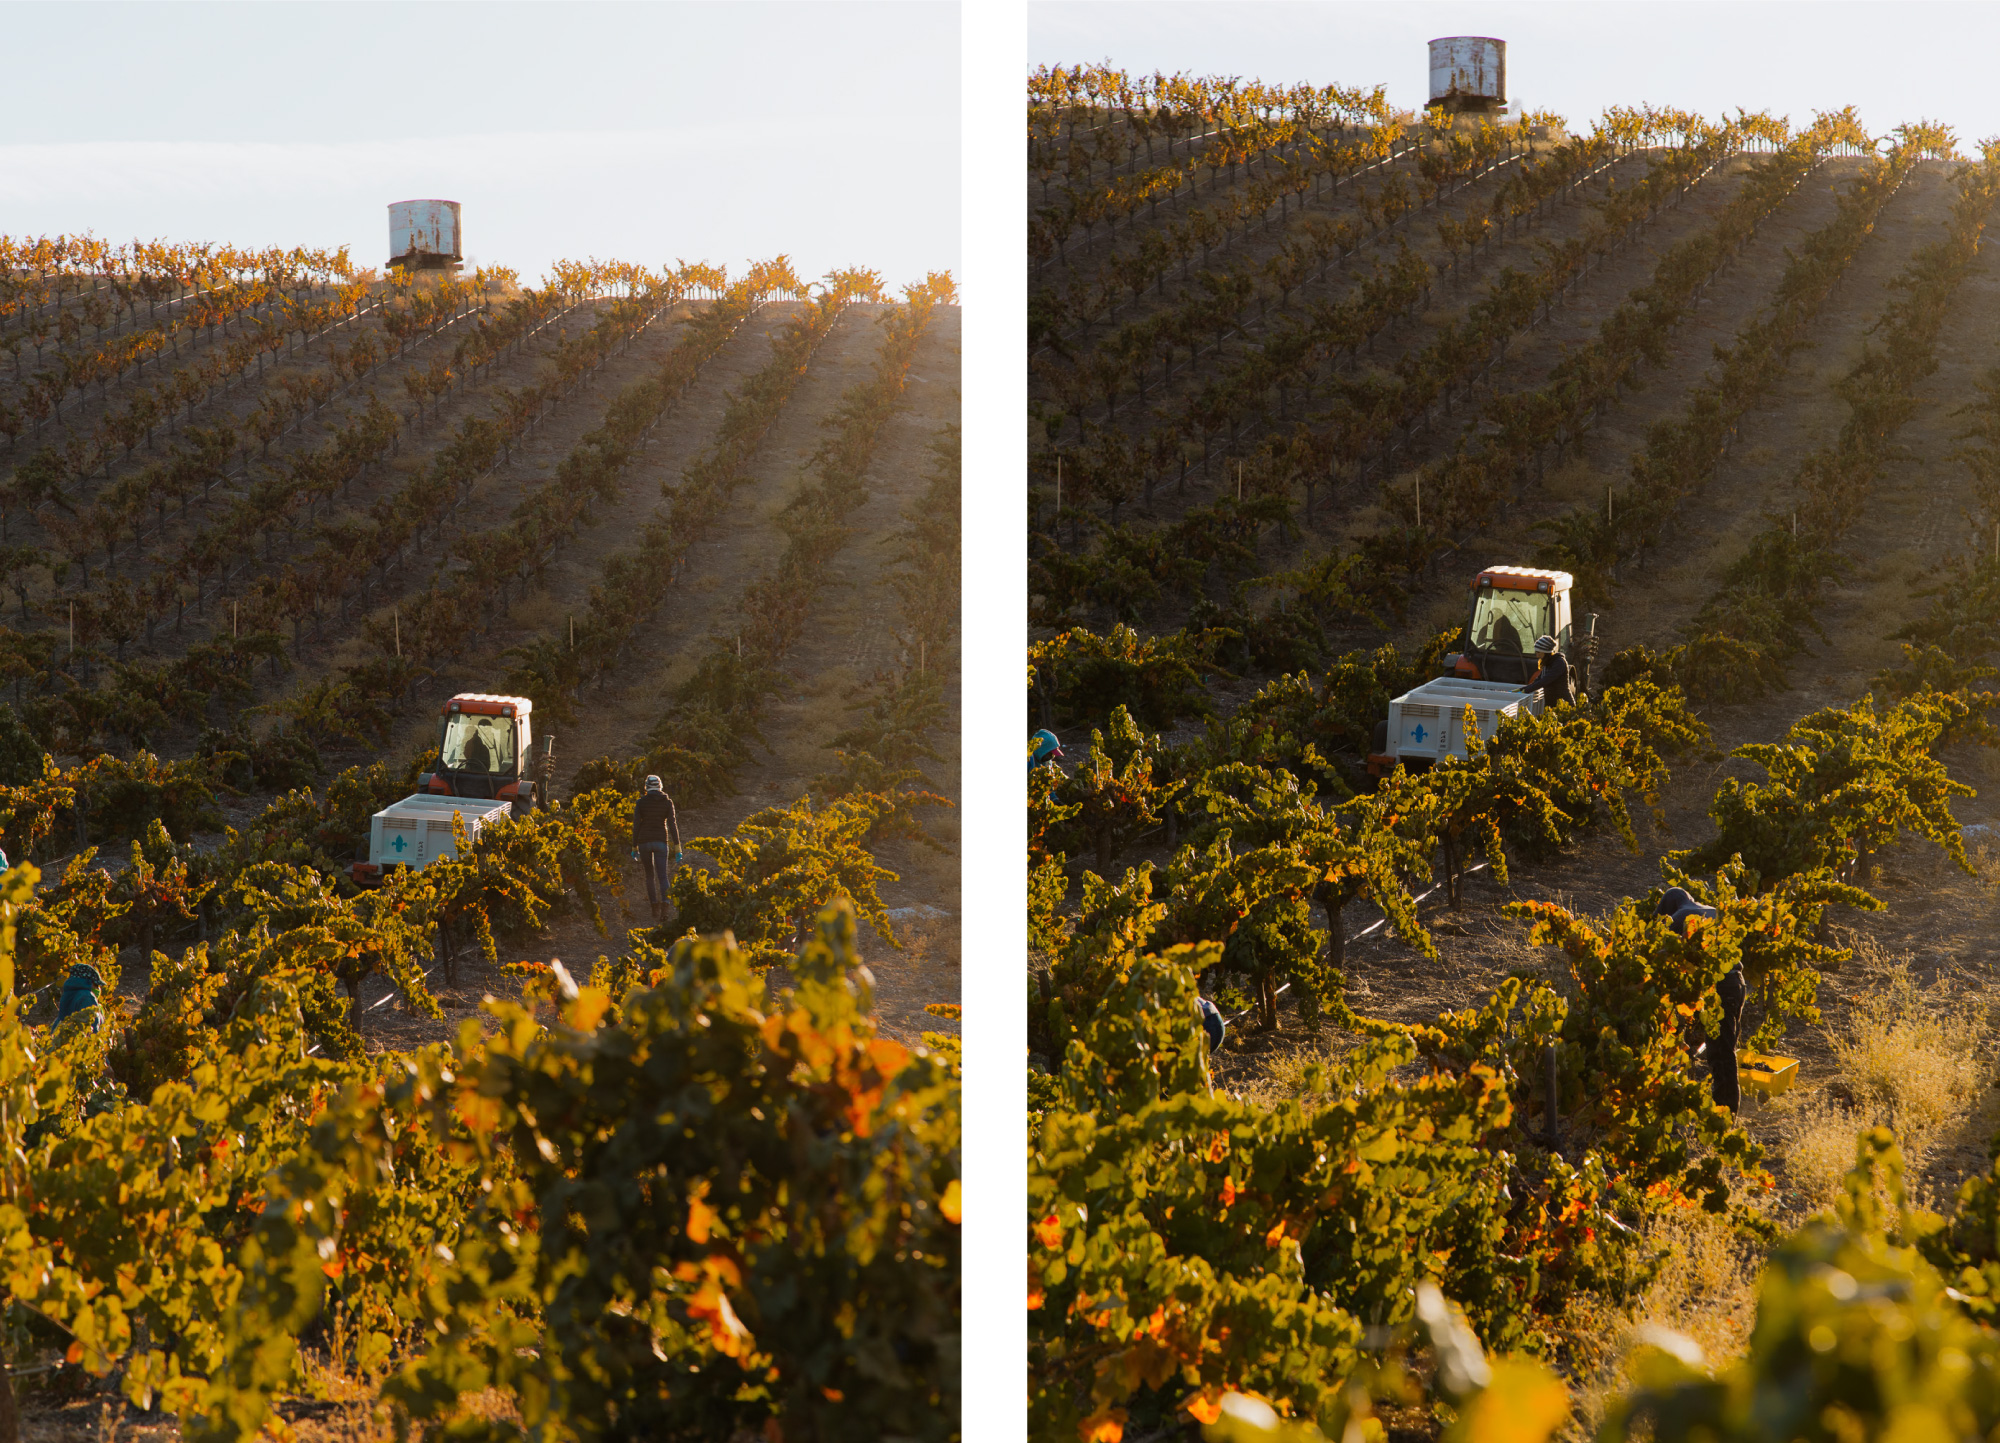 Wine Harvest Photography of Seven Oxen Estate Wines' Crew During Morning Pick at Estate Vineyard in Paso Robles, California